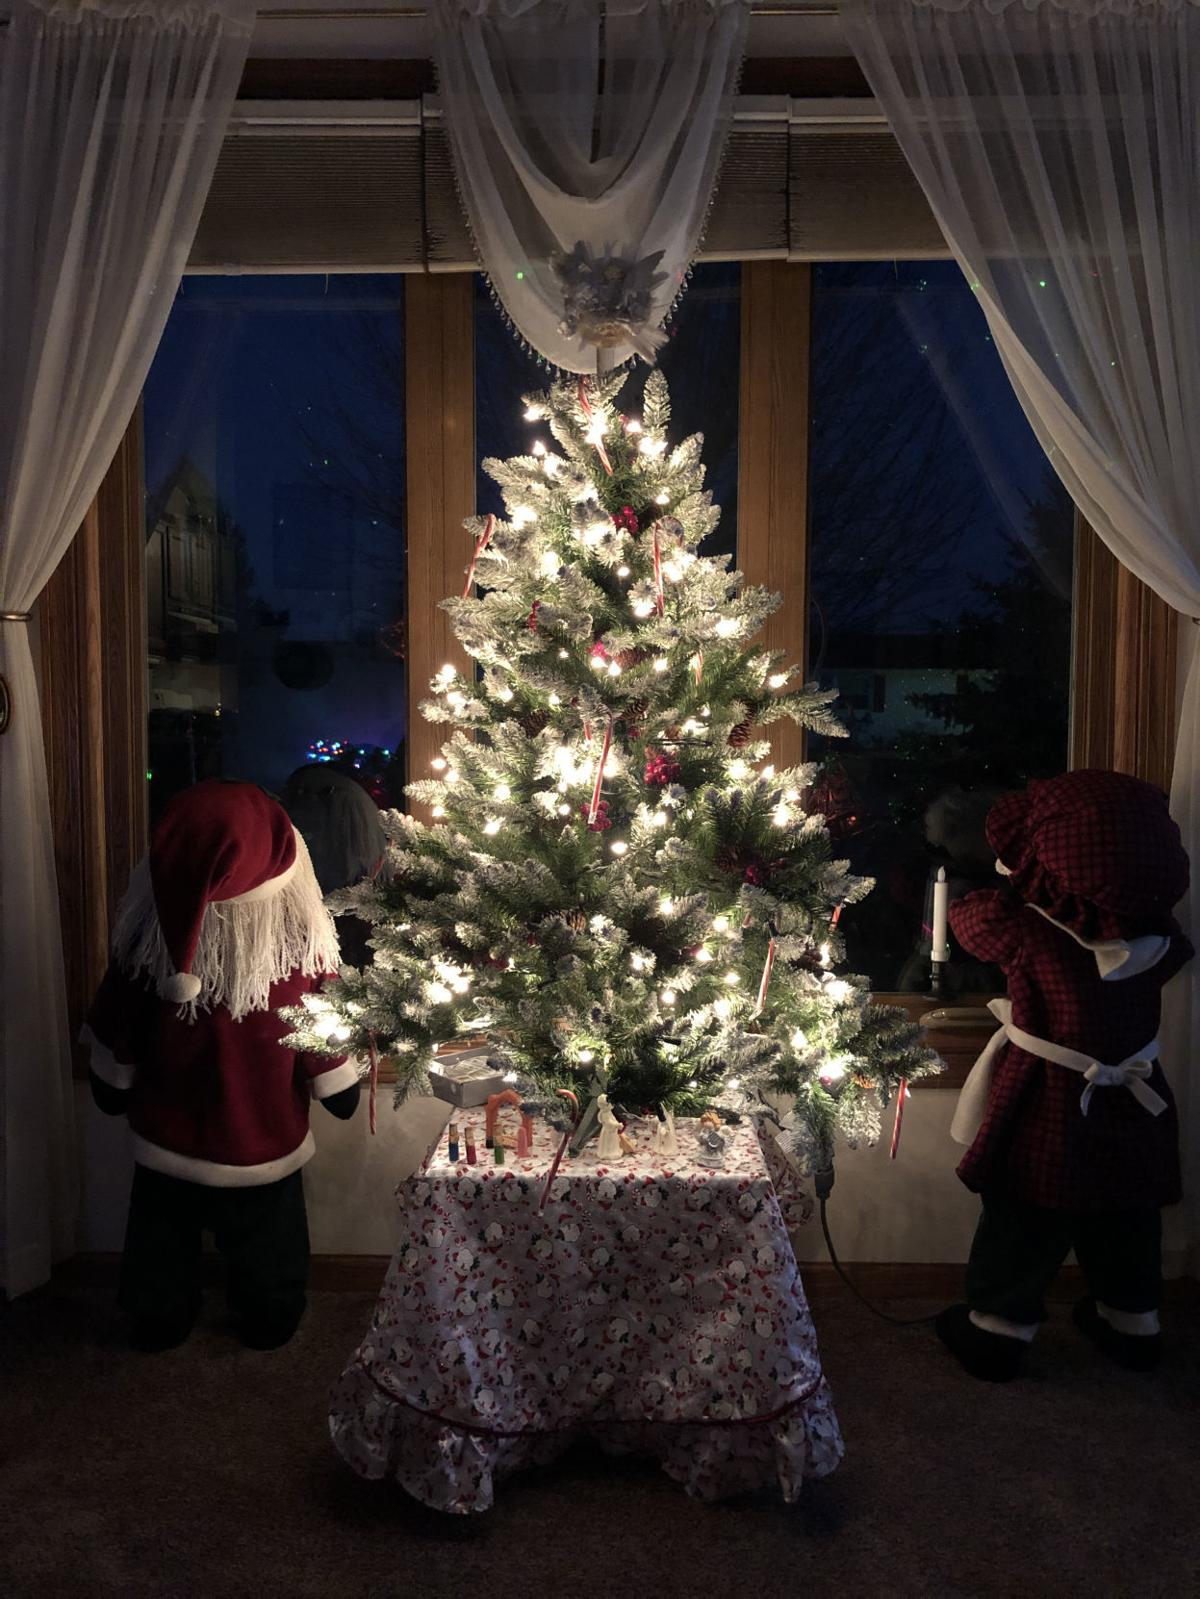 Kenosha News Wants To See Your Best Dressed Tree Kenoshanews Com